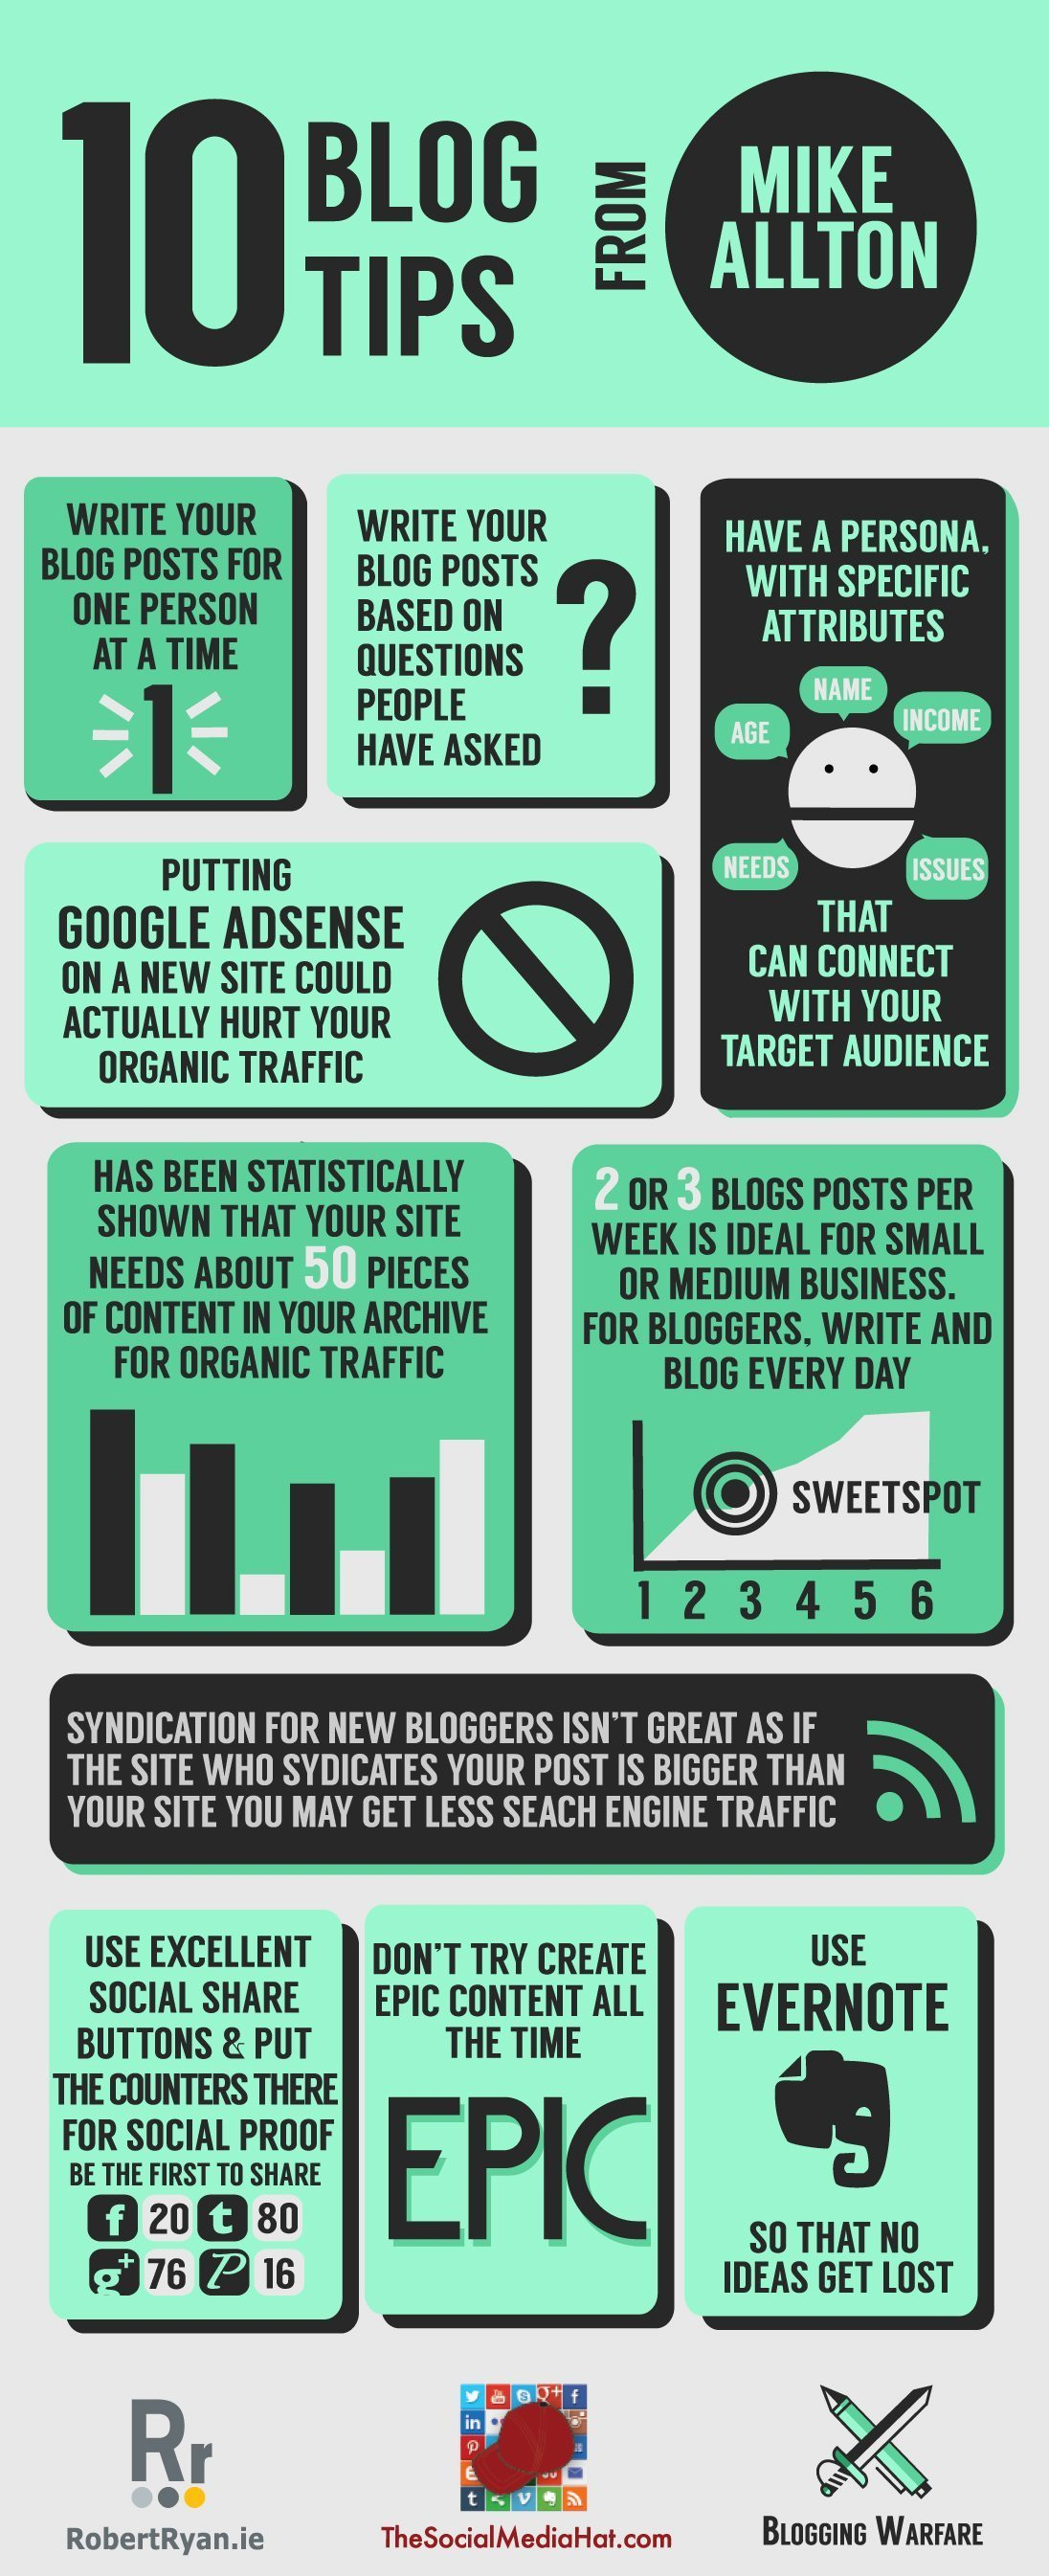 10 Blog Tips from Mike Allton - Infographic